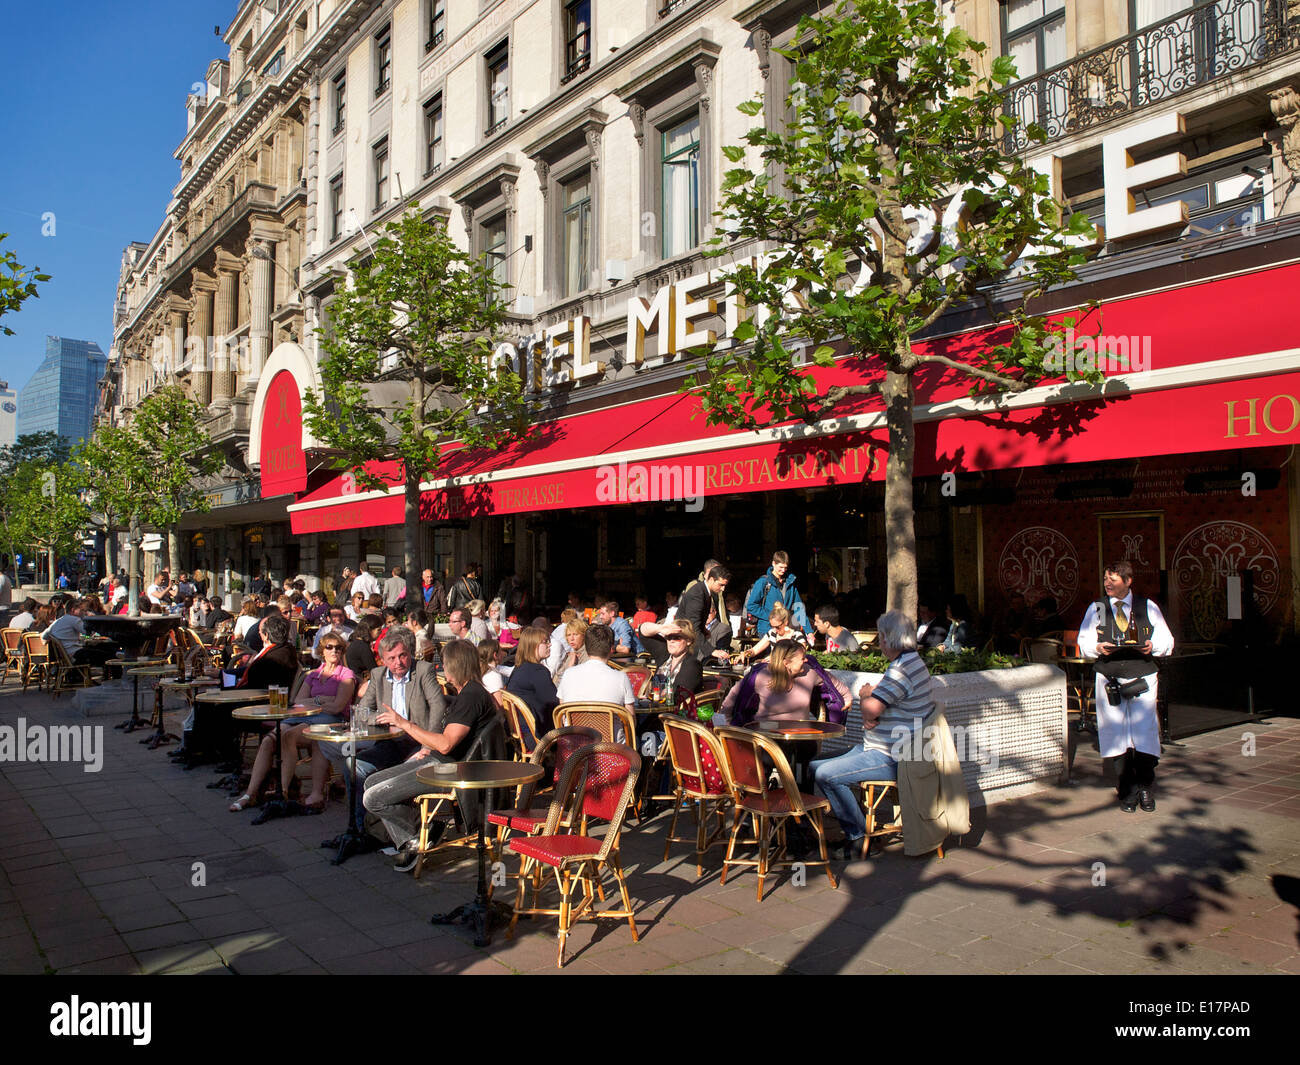 People enjoying the afternoon sun in front of the famous Hotel Metropole in Brussels, Belgium - Stock Image